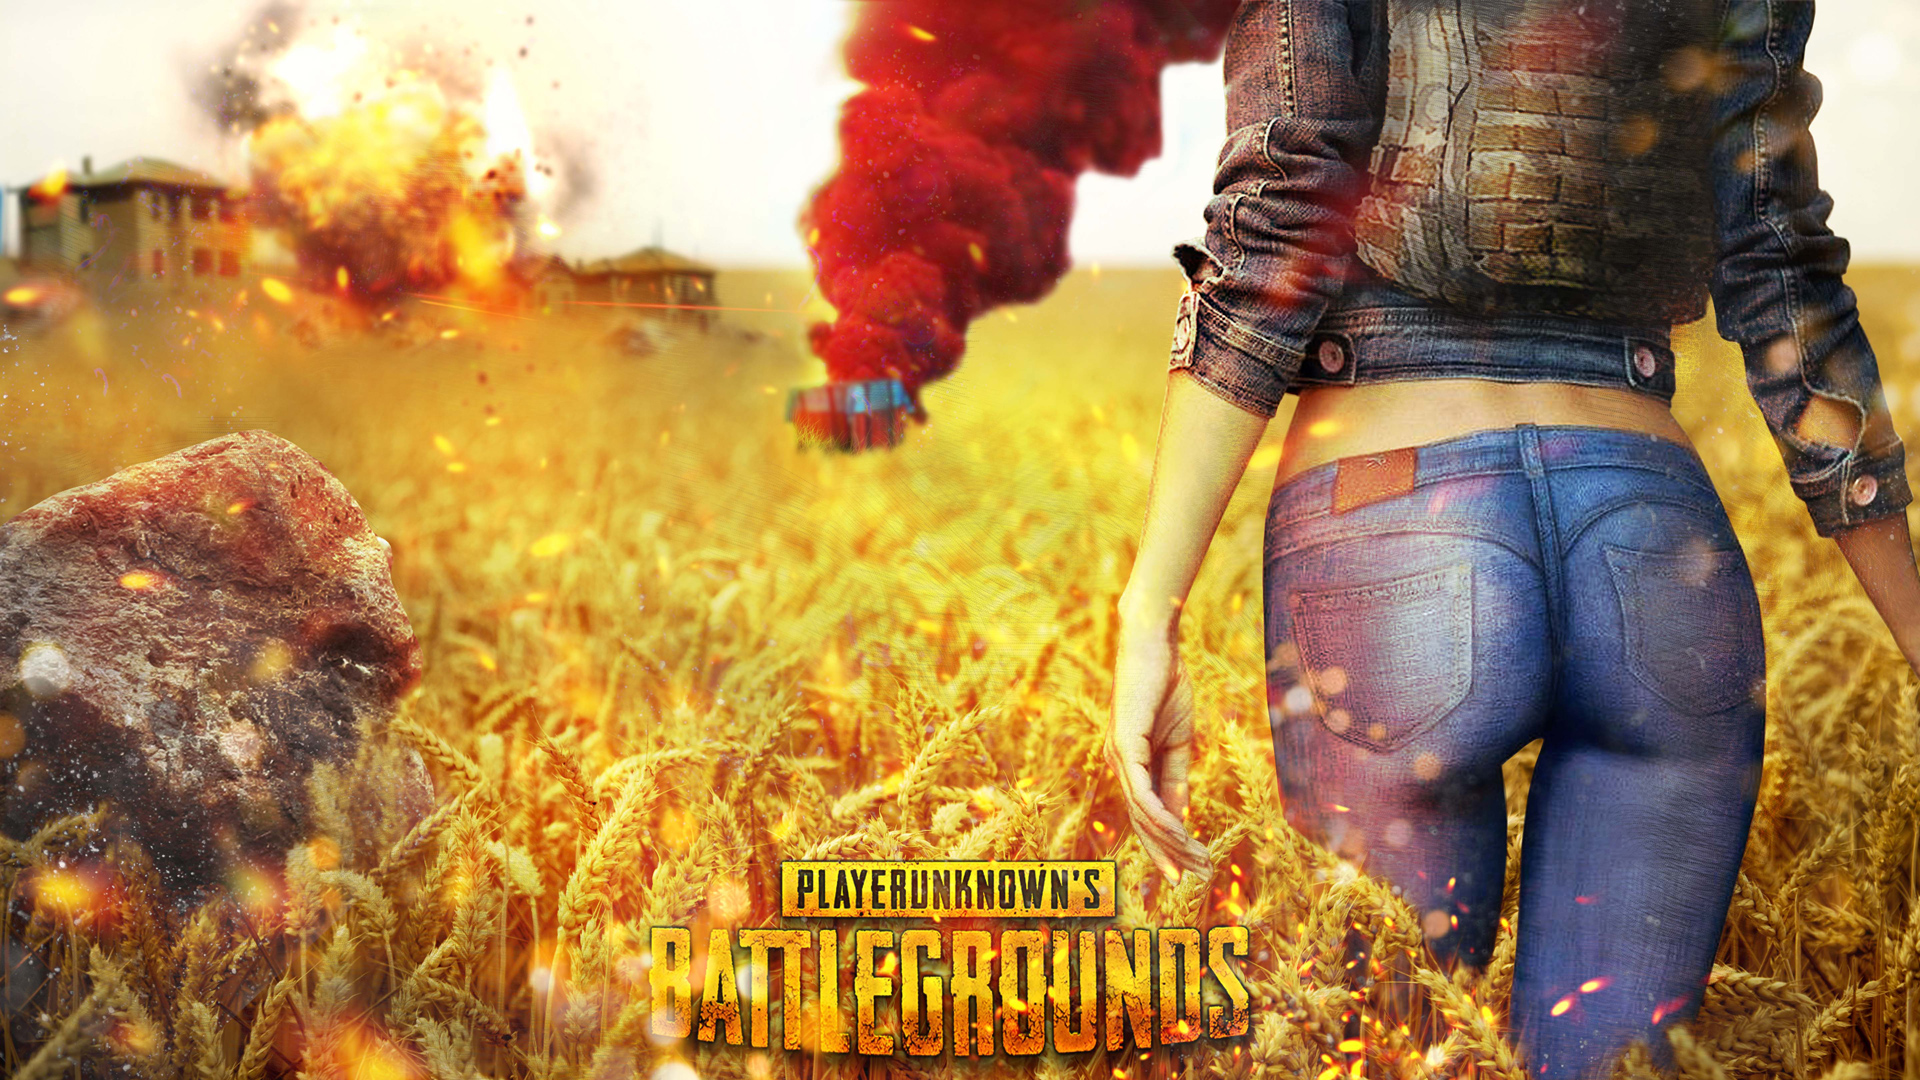 1920x1080 Pubg Artwork 4k Laptop Full Hd 1080p Hd 4k: 1920x1080 Playerunknowns Battlegrounds 1080P Laptop Full